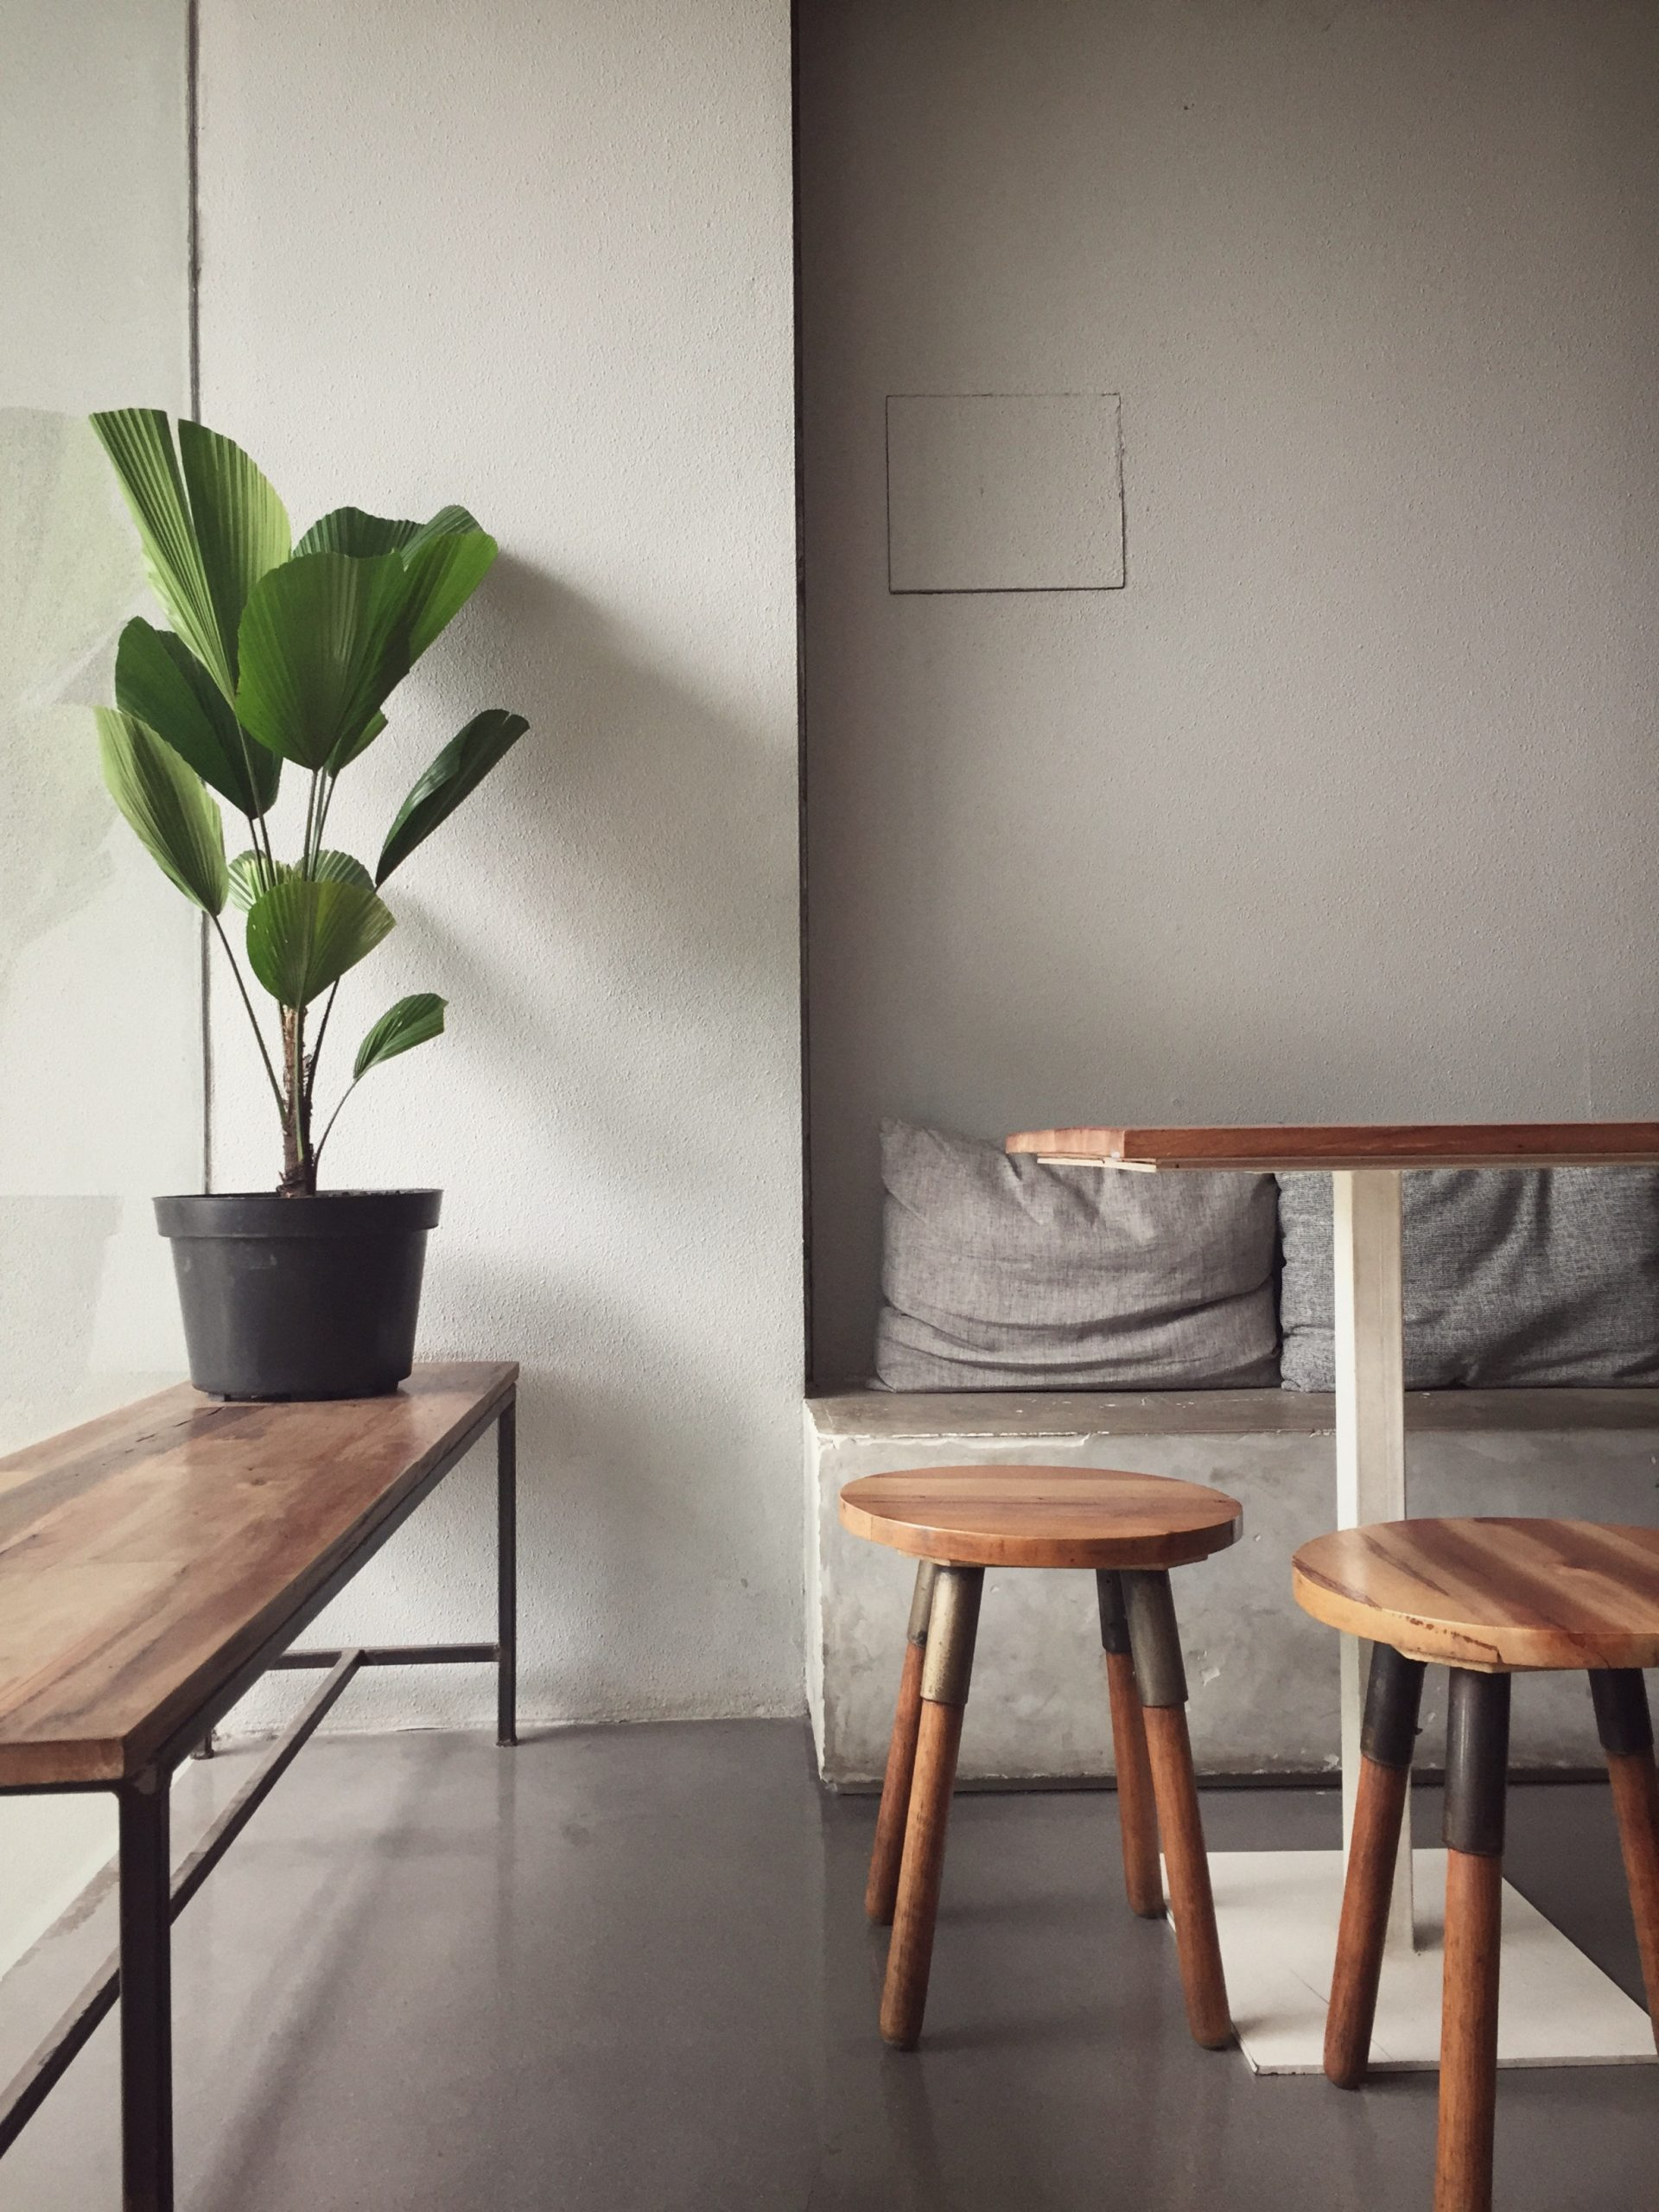 wooden-bench-and-stools-in-a-cozy-room-3049121